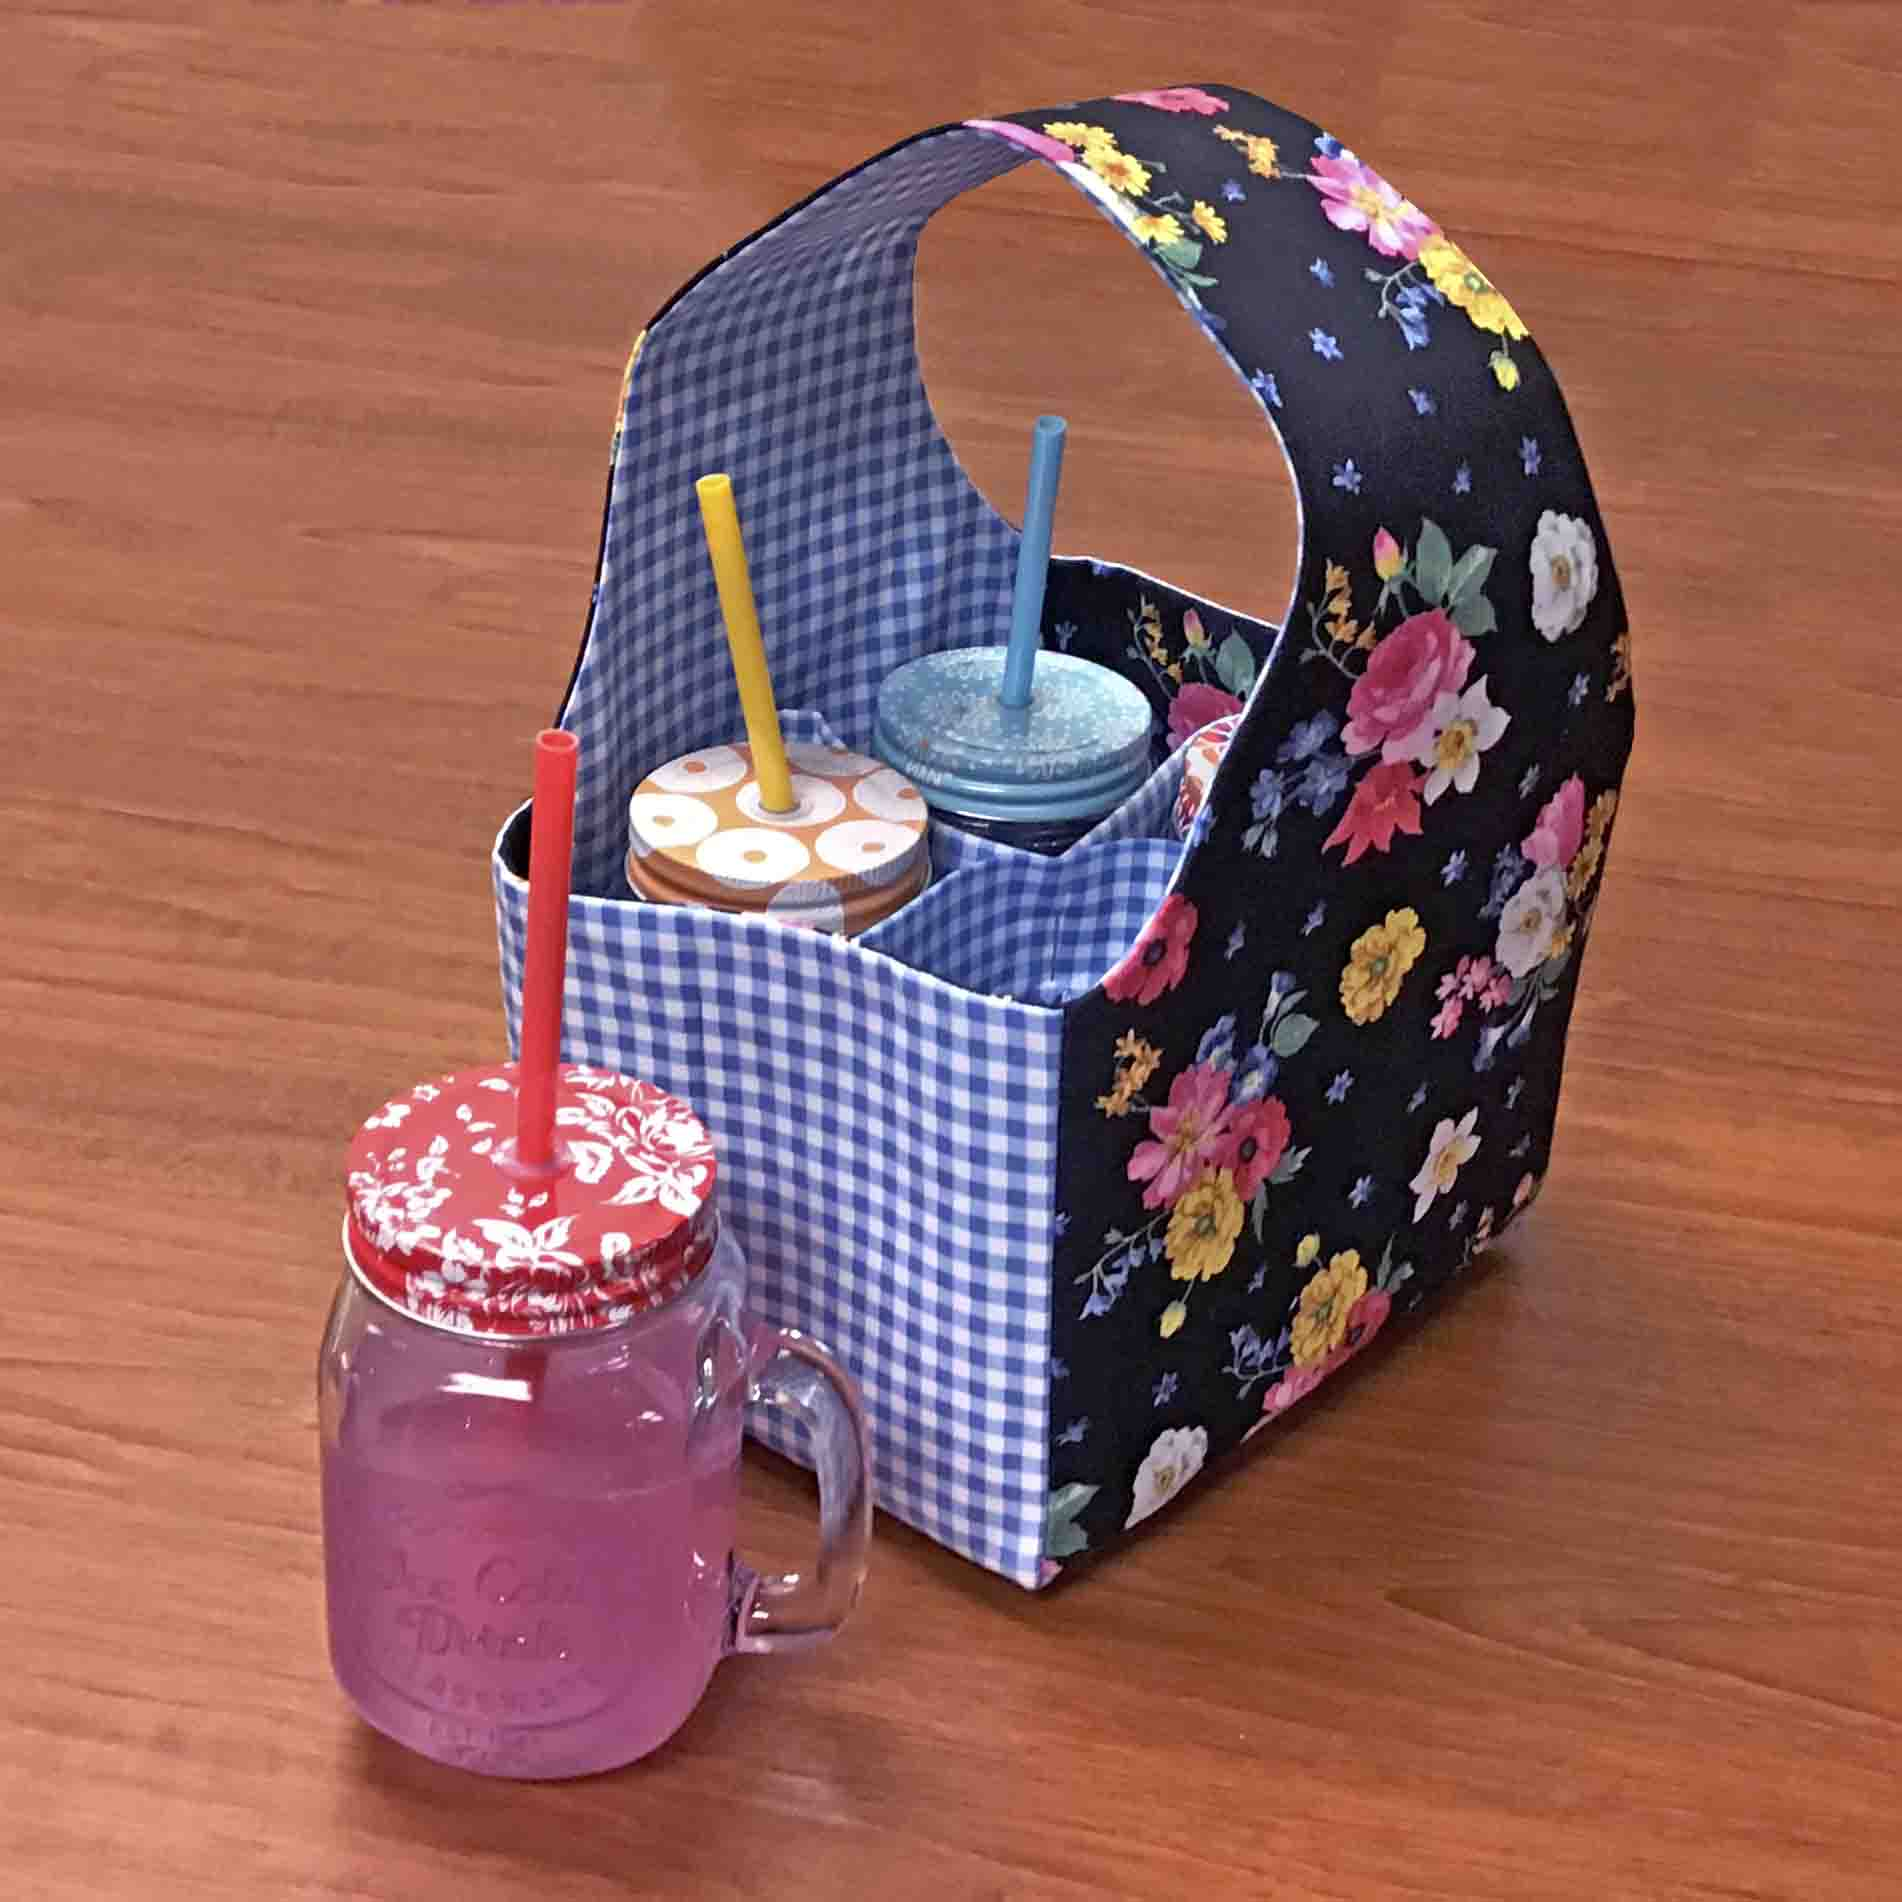 NEW! Stitch it! SIsters Program 110 Fun Fabric Caddy available at shopnzp.com